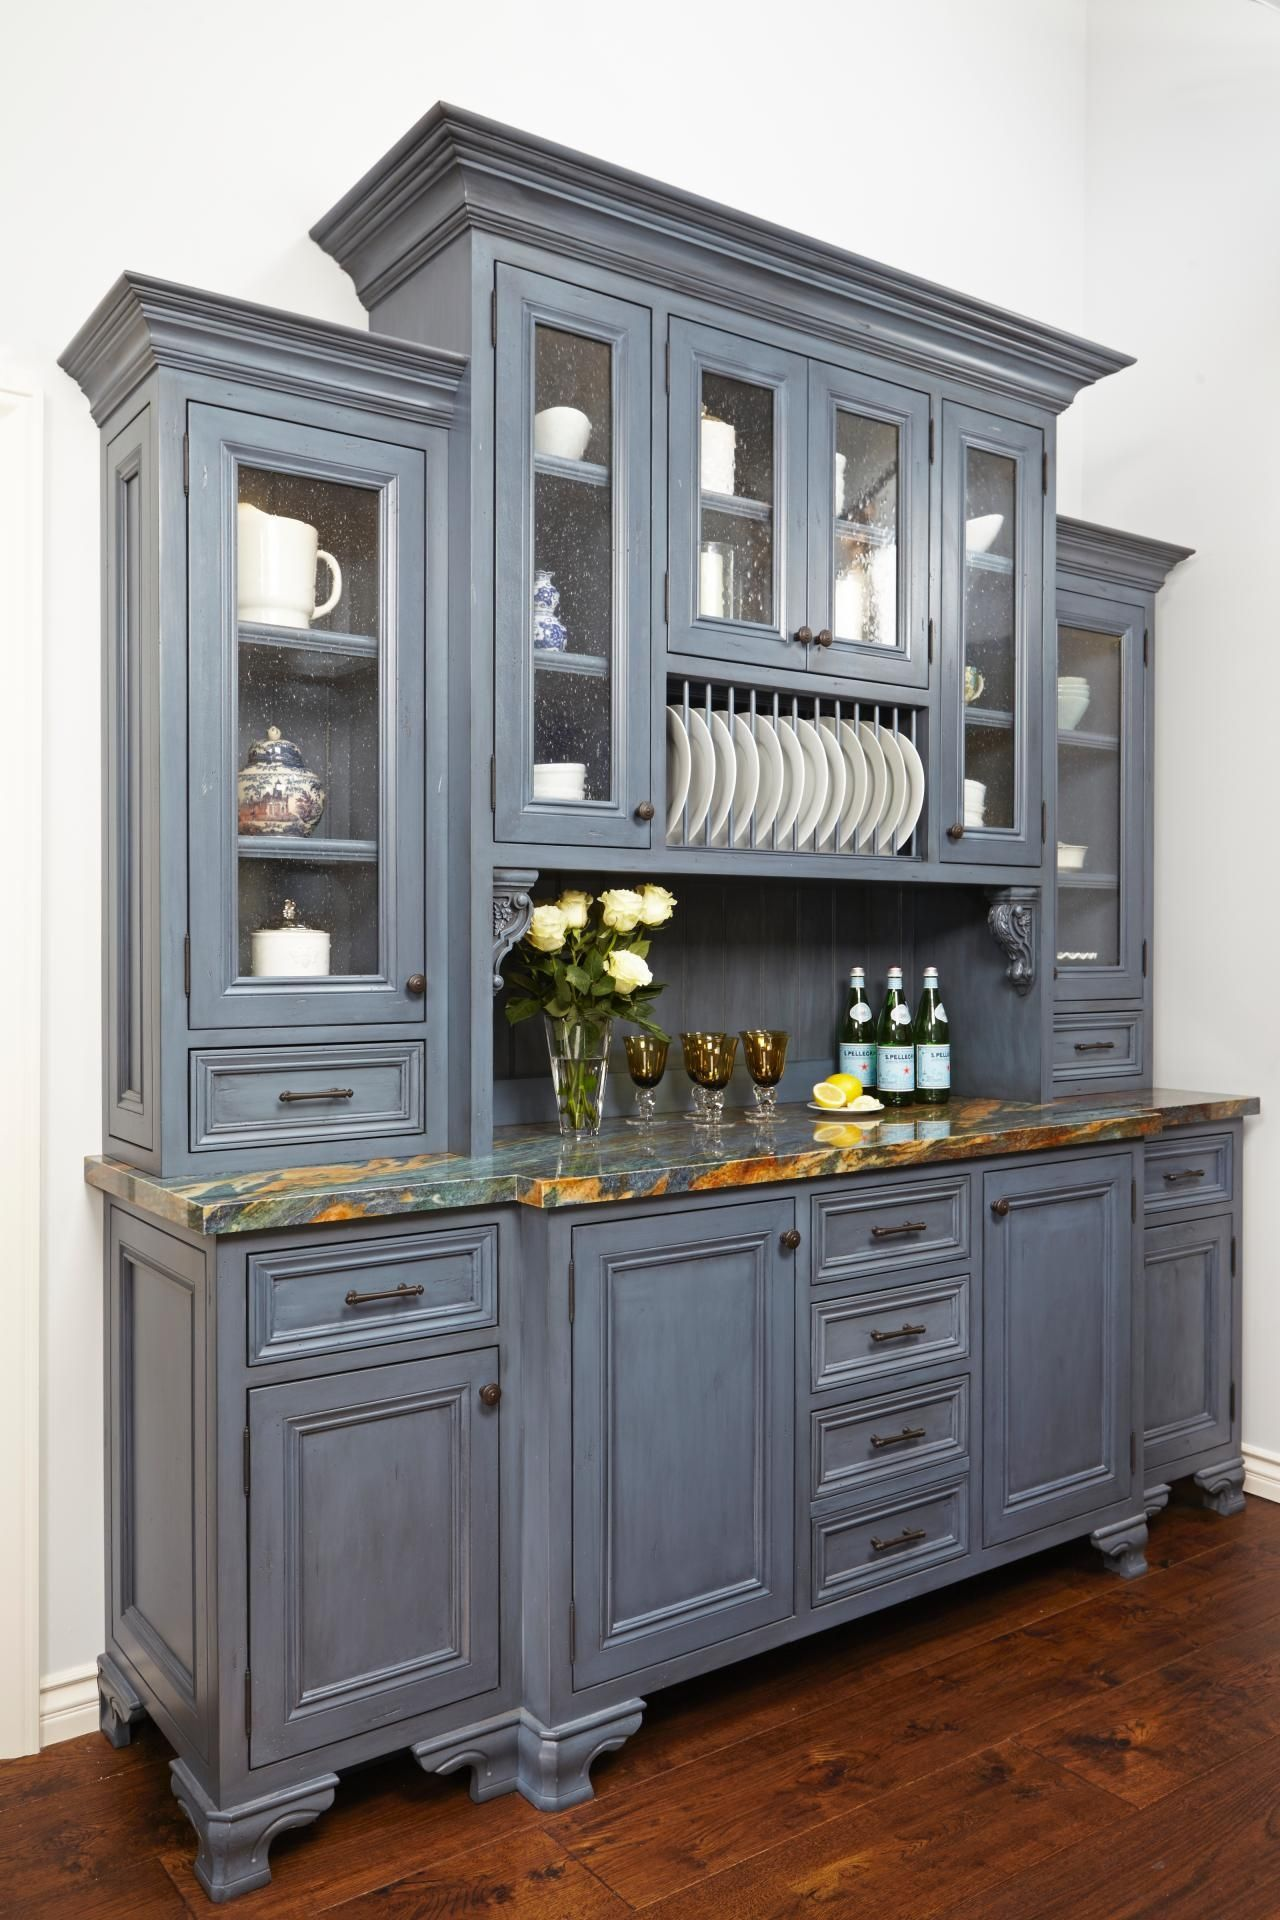 kitchen buffet hutch storage units kitchens french country ideas buffets for modern